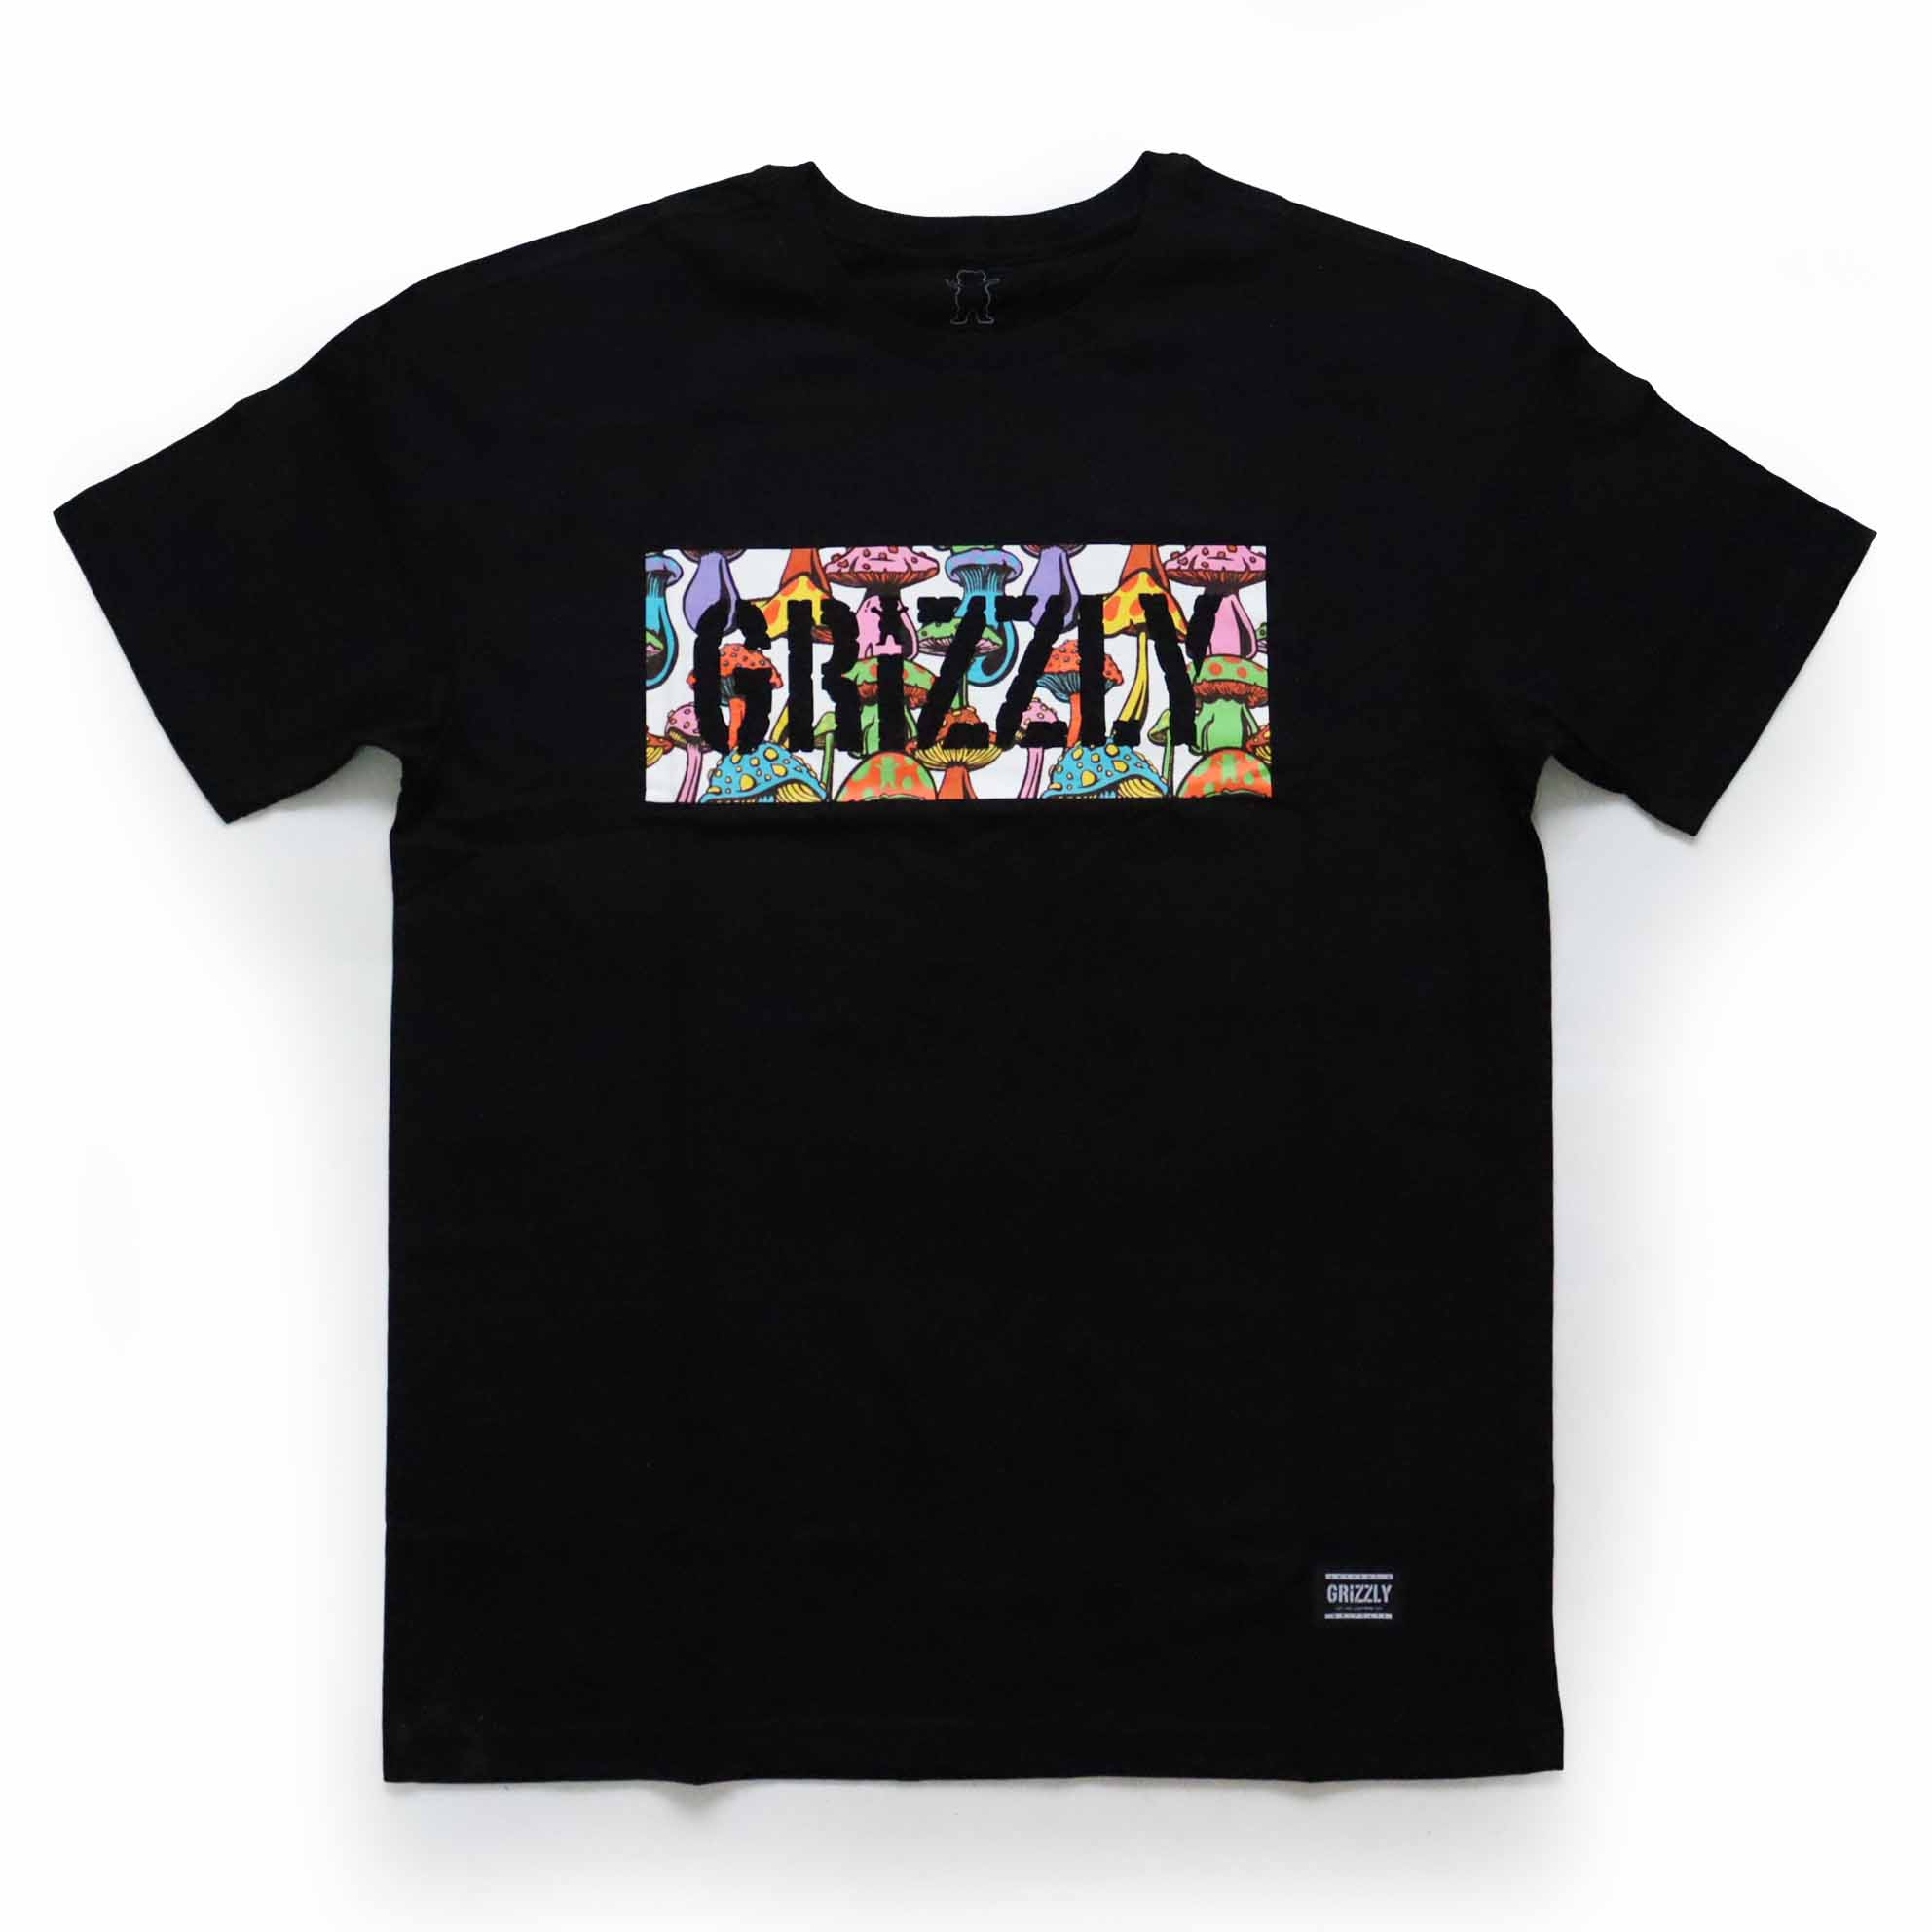 Camiseta Grizzly Fungi Box - Preto